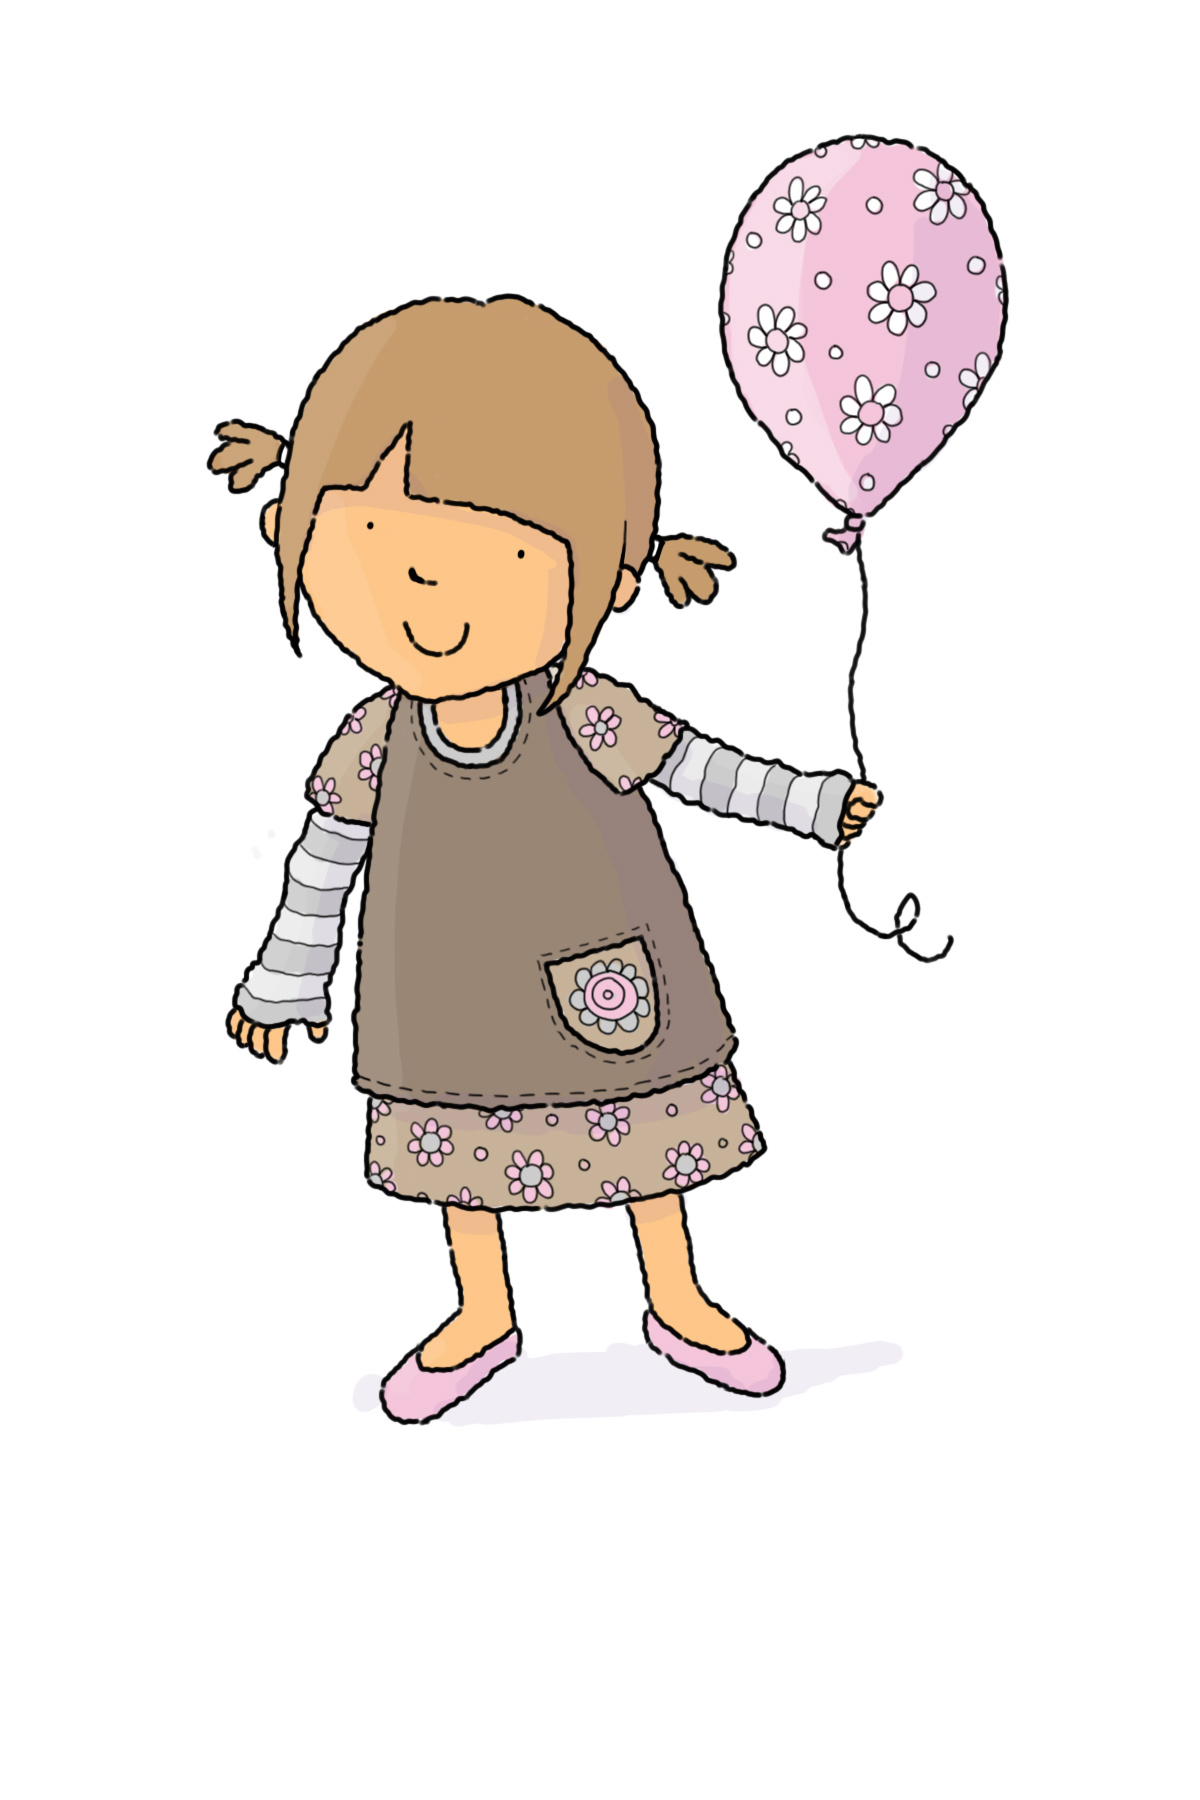 claire keay_girl and flower balloon